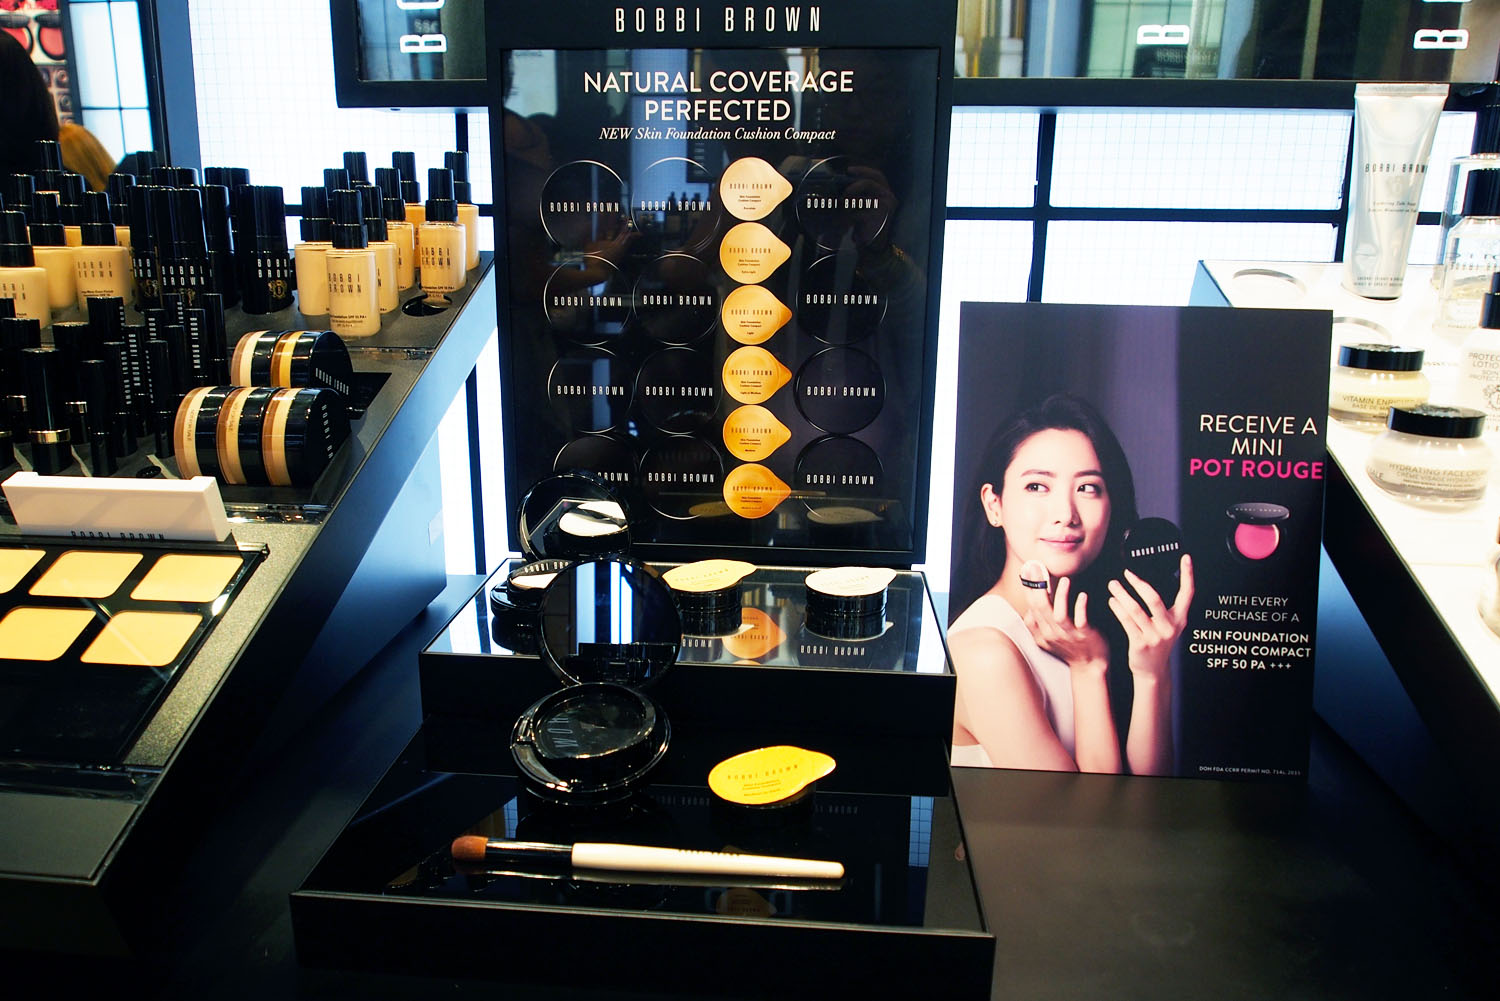 Bobbi's newest  Skin Foundation Cushion Compact  on display (we've reviewed it  here !)